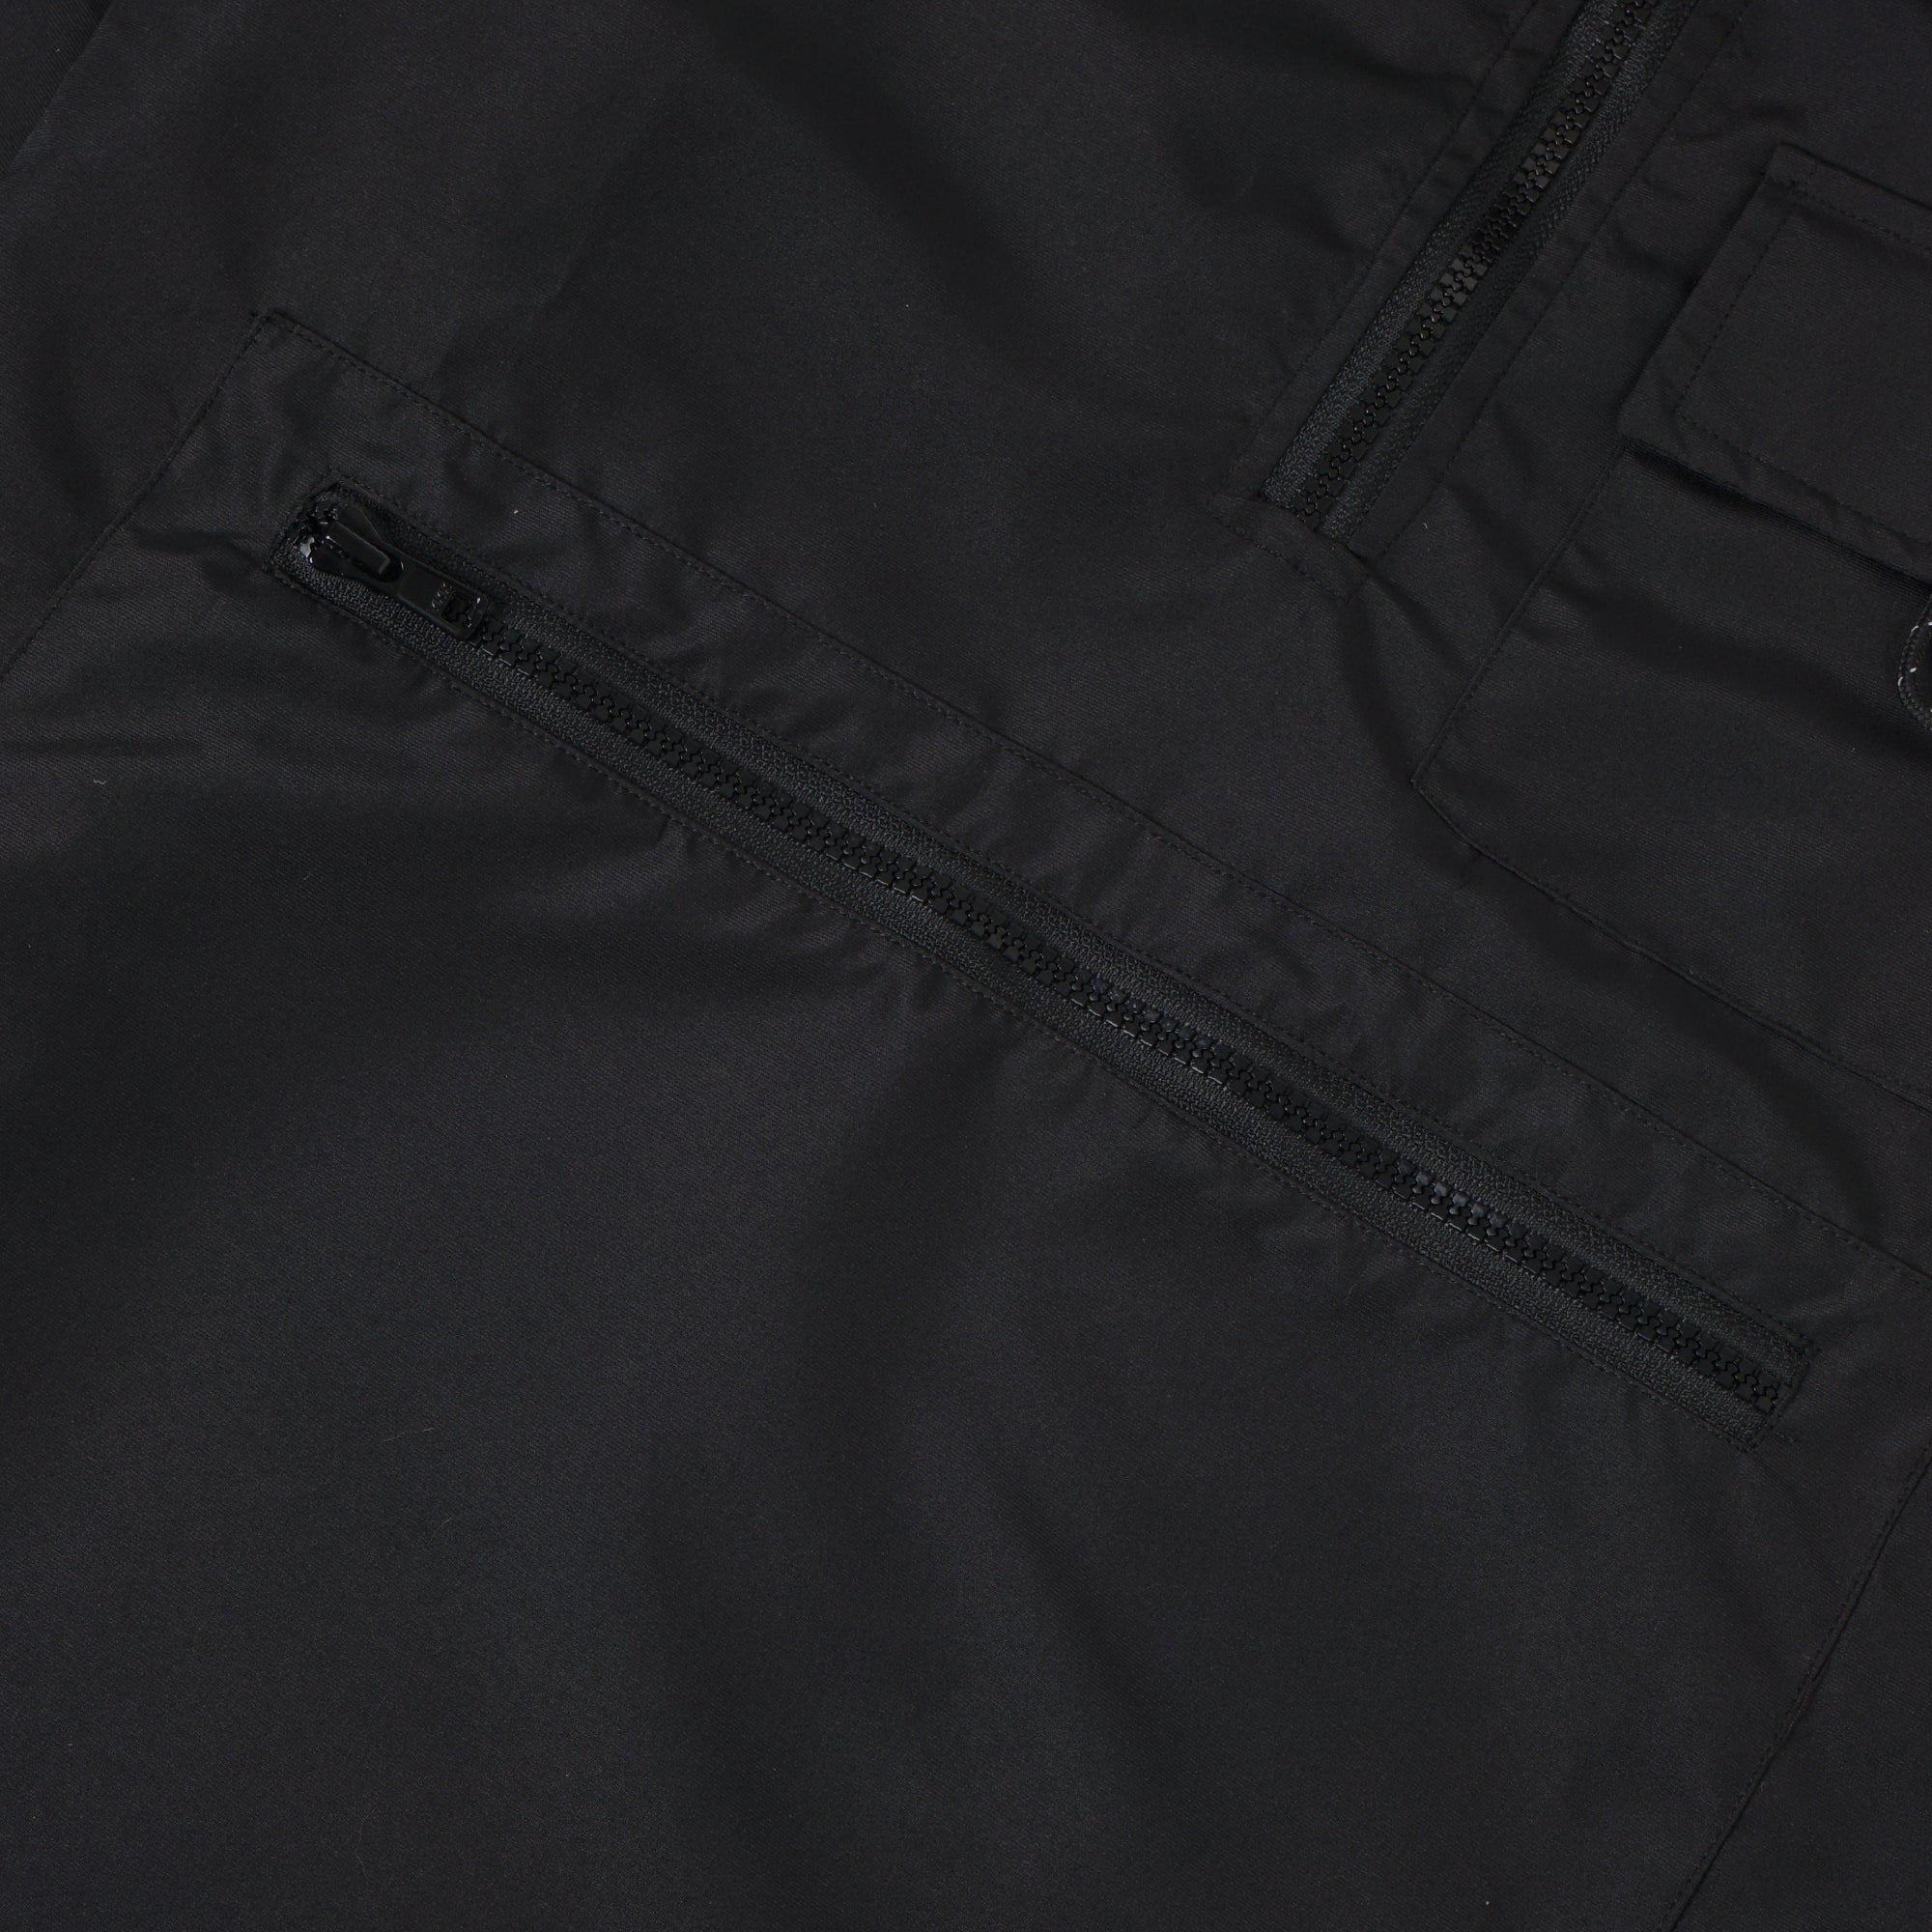 Jacket Skara Overhead Black